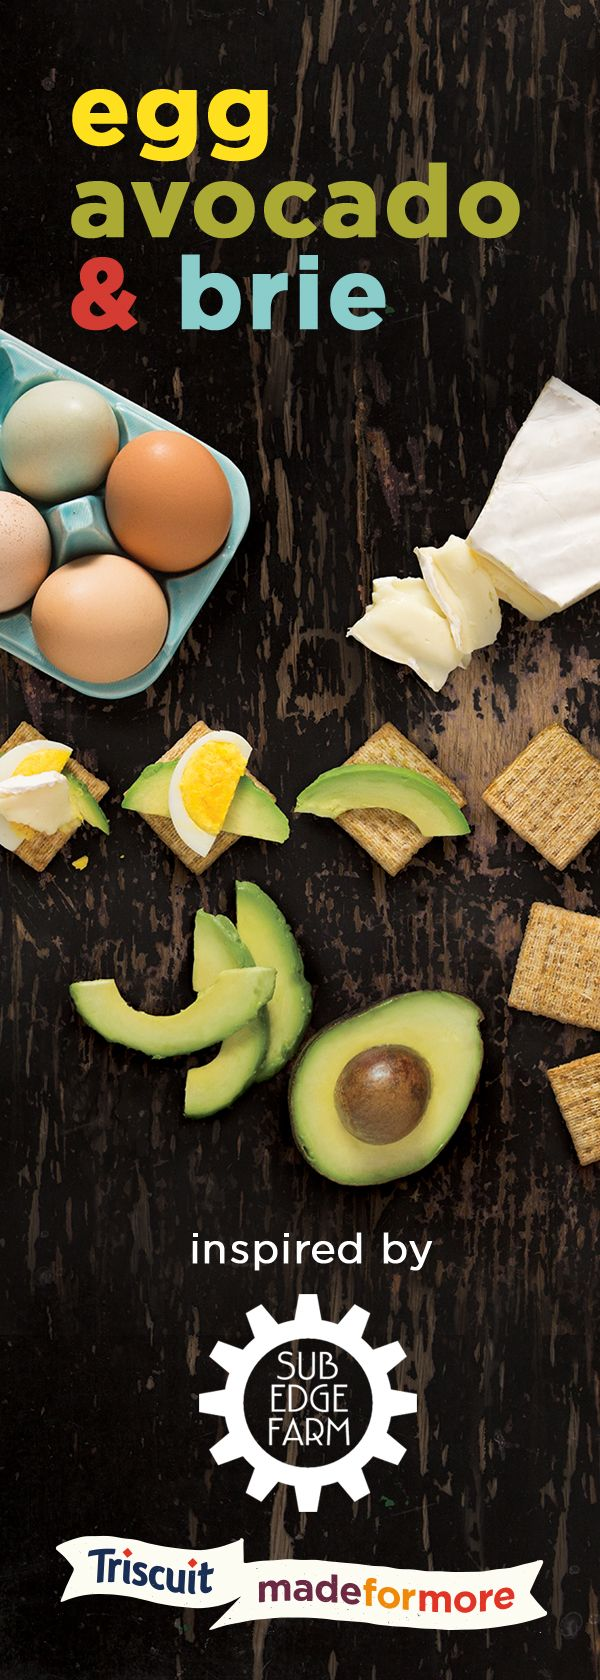 Inspired by our friends at Sub Edge farm, here's another delicious way to enjoy Avocado Toast à la TRISCUIT. Start with ripe avocado, then add a layer of sliced hard-boiled egg and warm brie atop a TRISCUIT cracker. ‪Simple and oh-so-yummy!